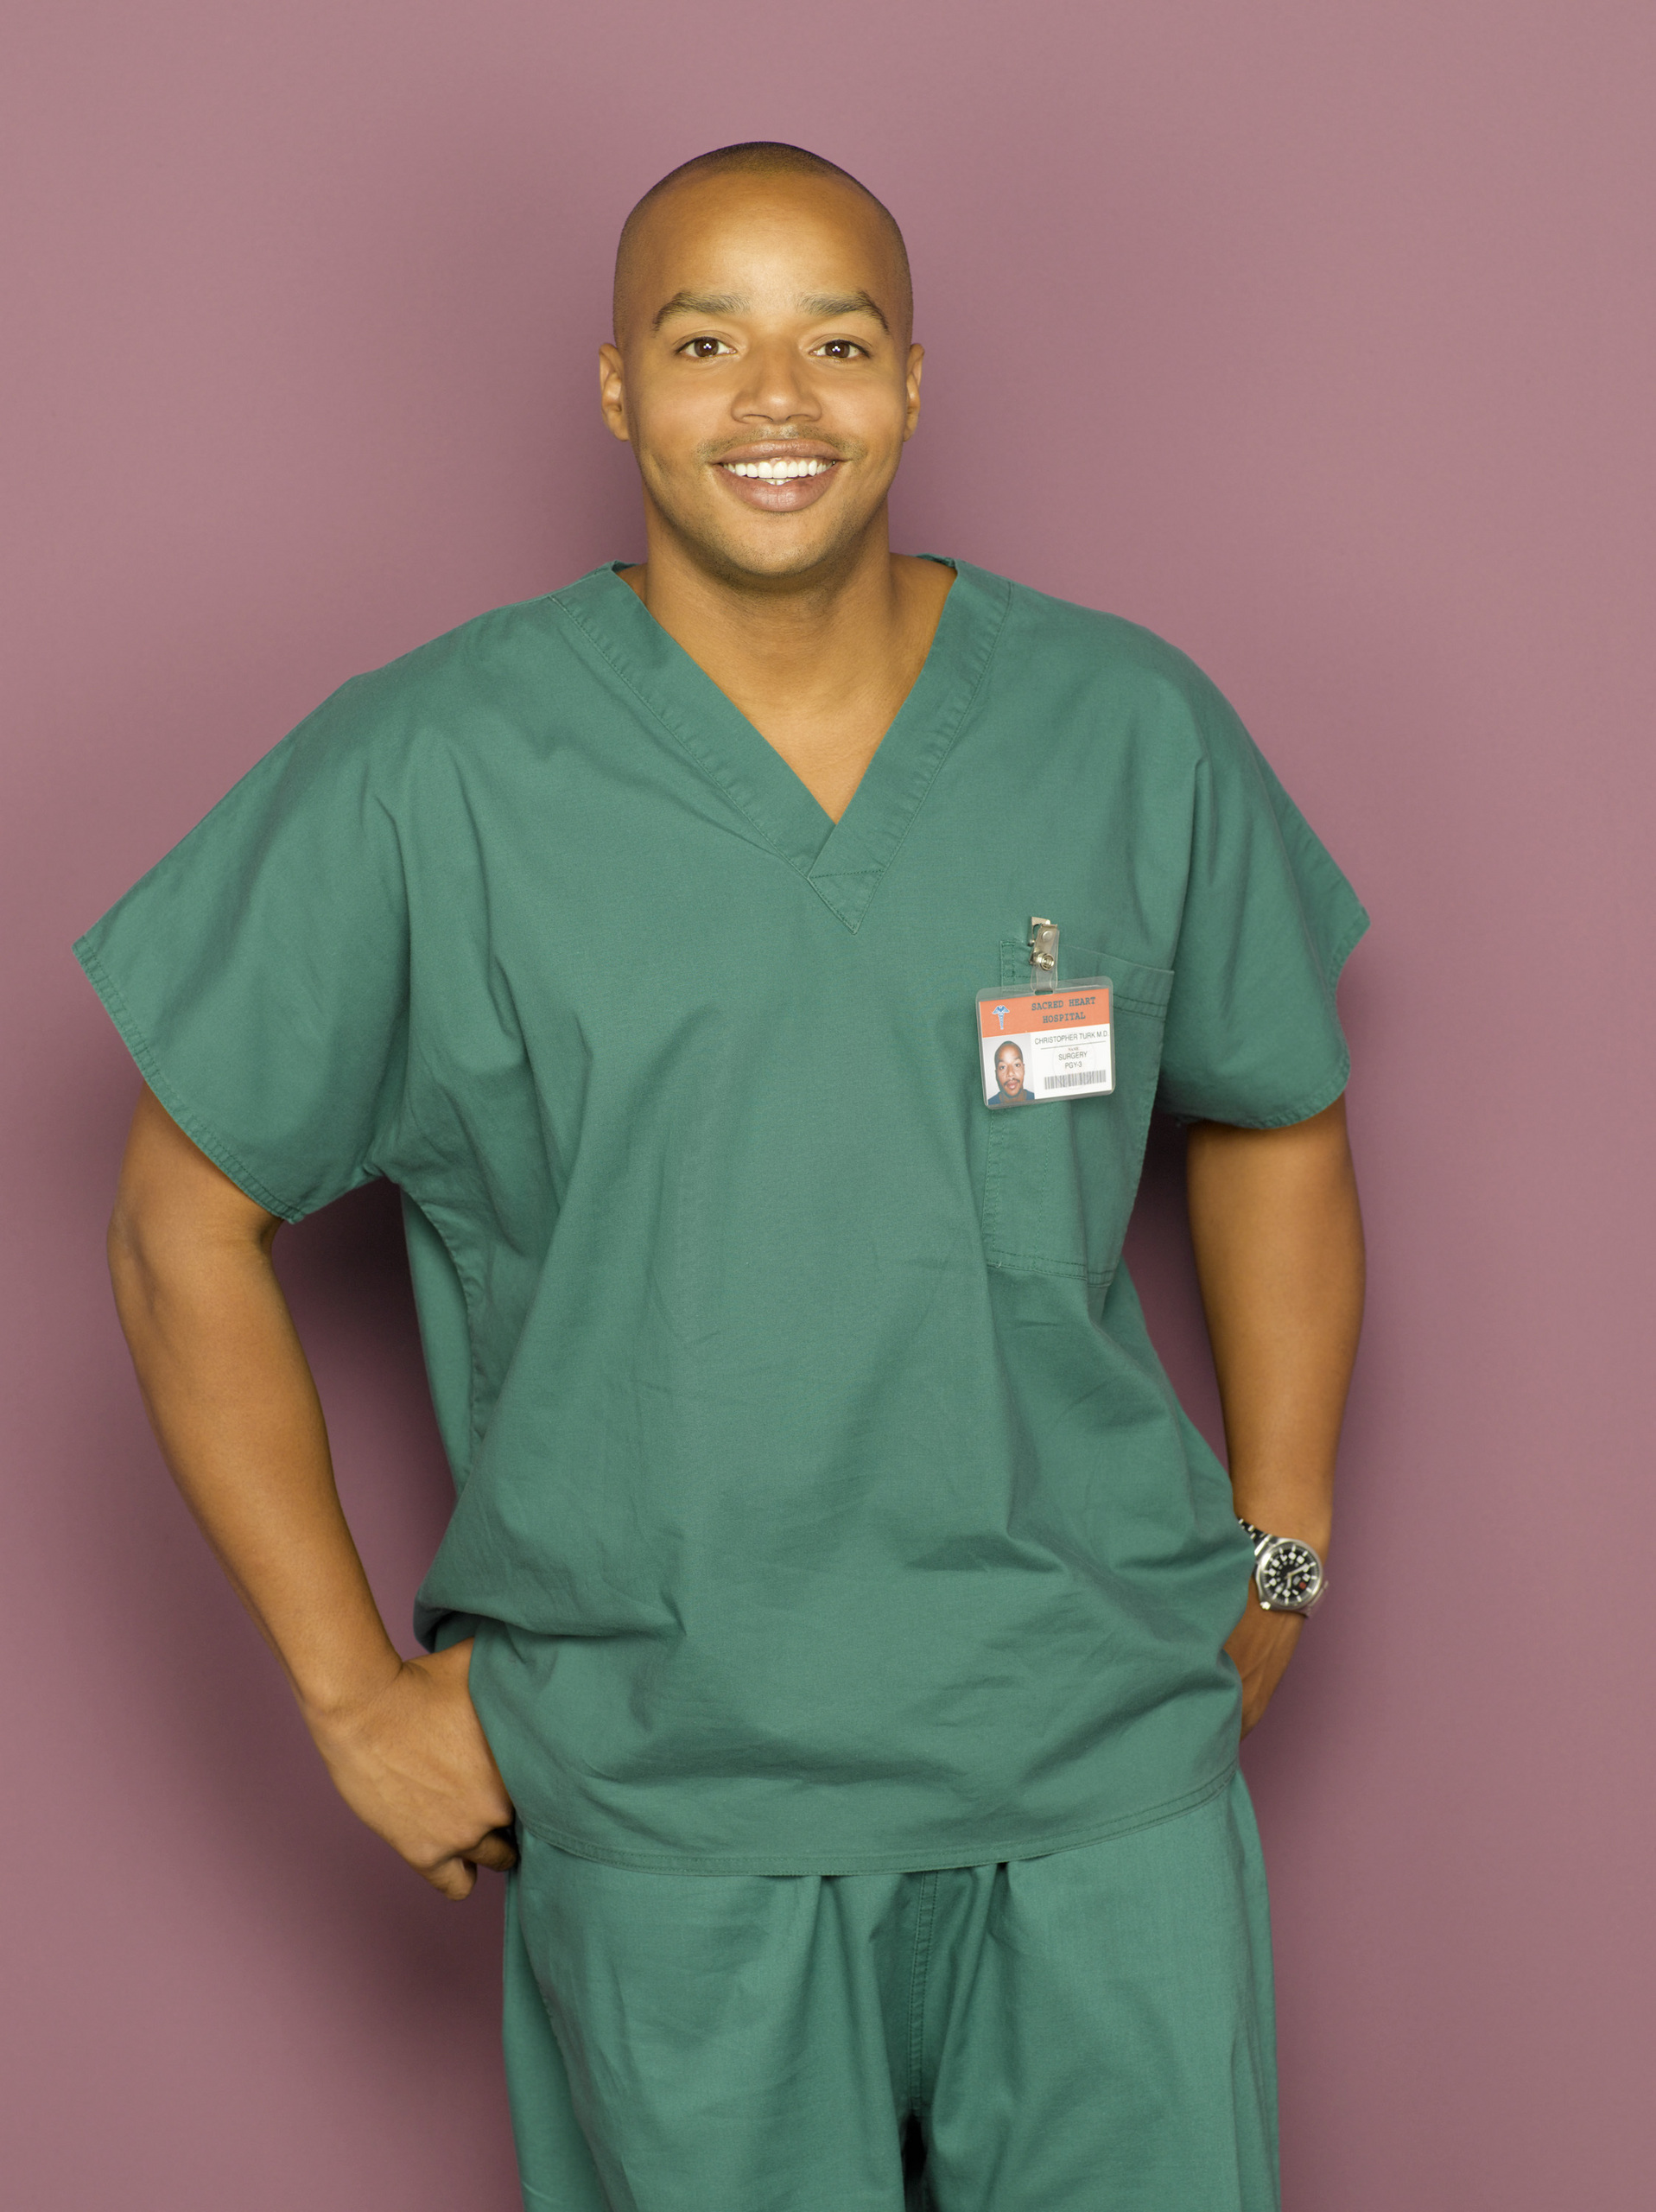 http://images2.fanpop.com/images/photos/2800000/Season-8-Promotional-Cast-Photos-scrubs-2889051-1917-2560.jpg